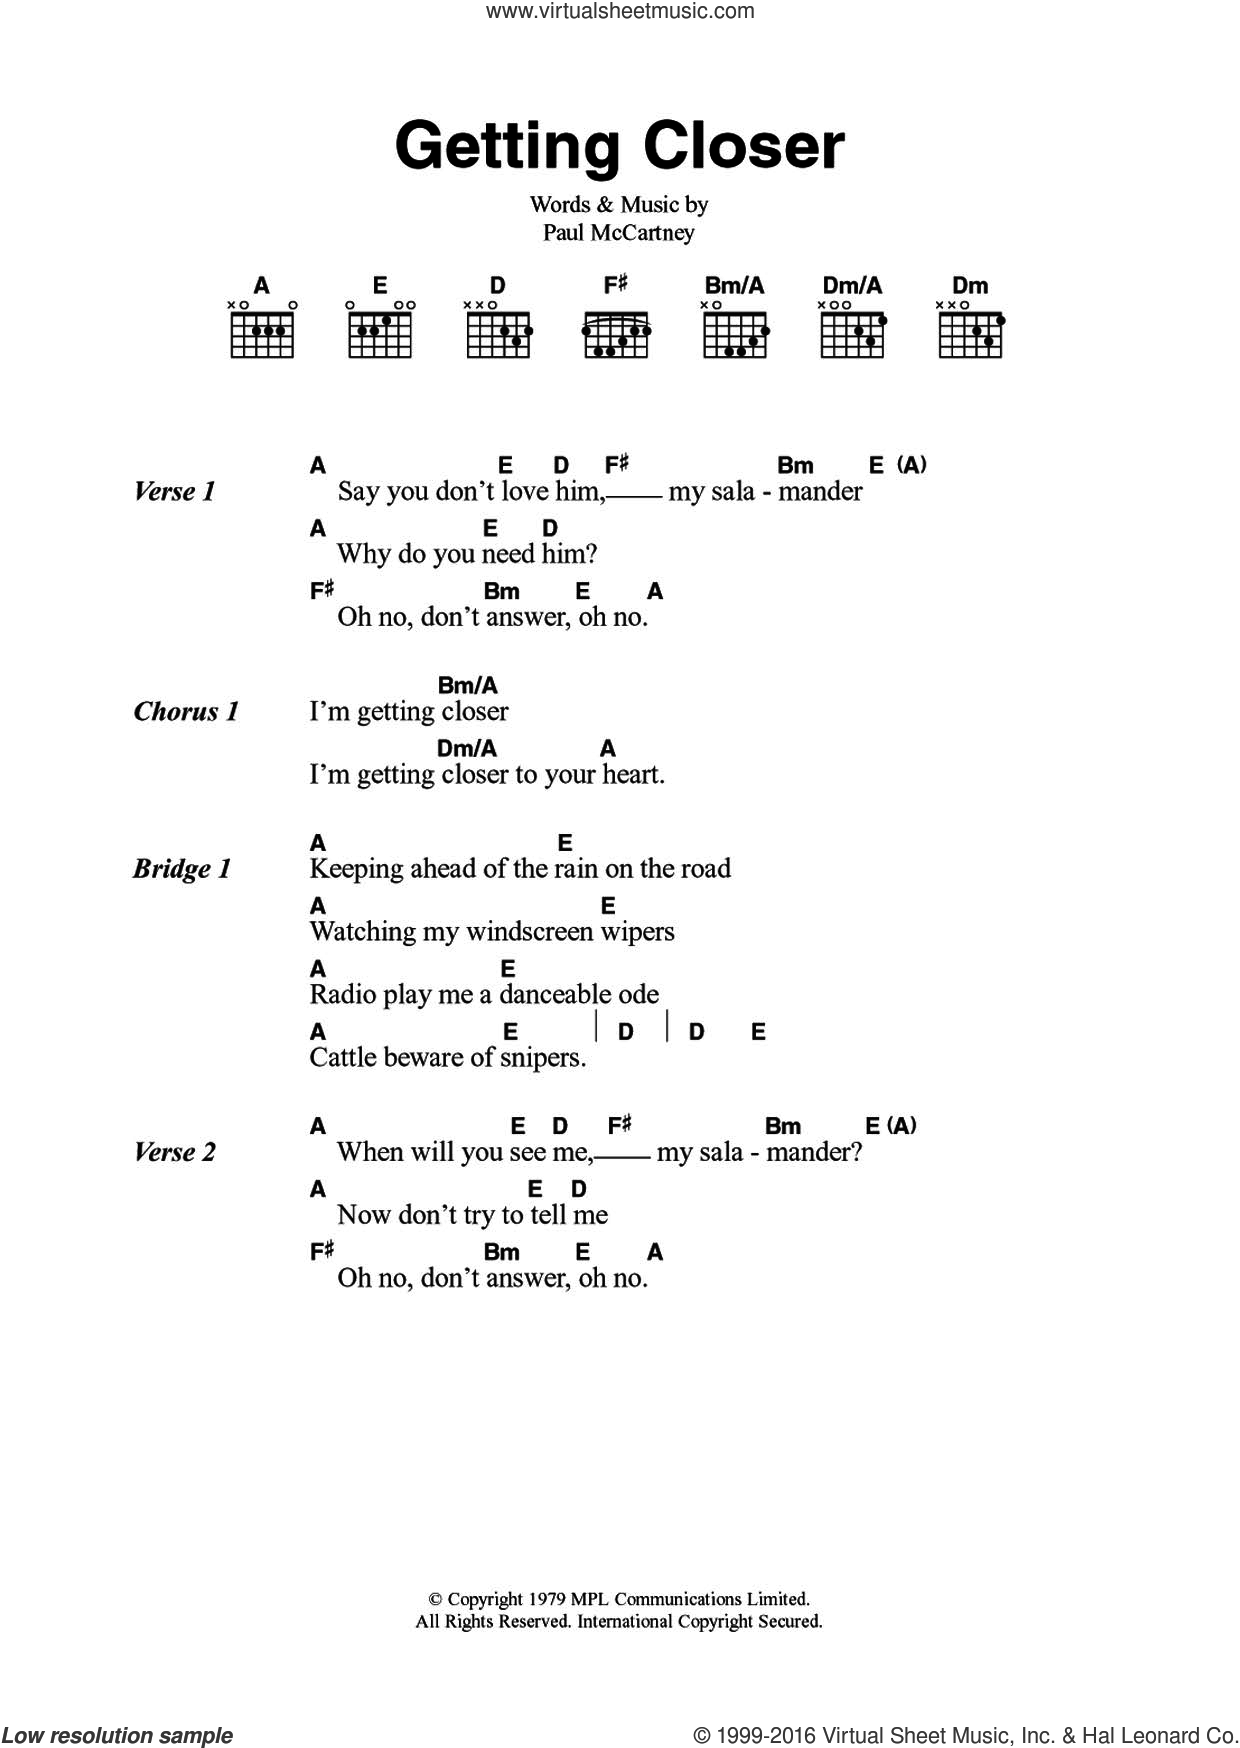 Getting Closer sheet music for guitar (chords) by Wings and Paul McCartney. Score Image Preview.